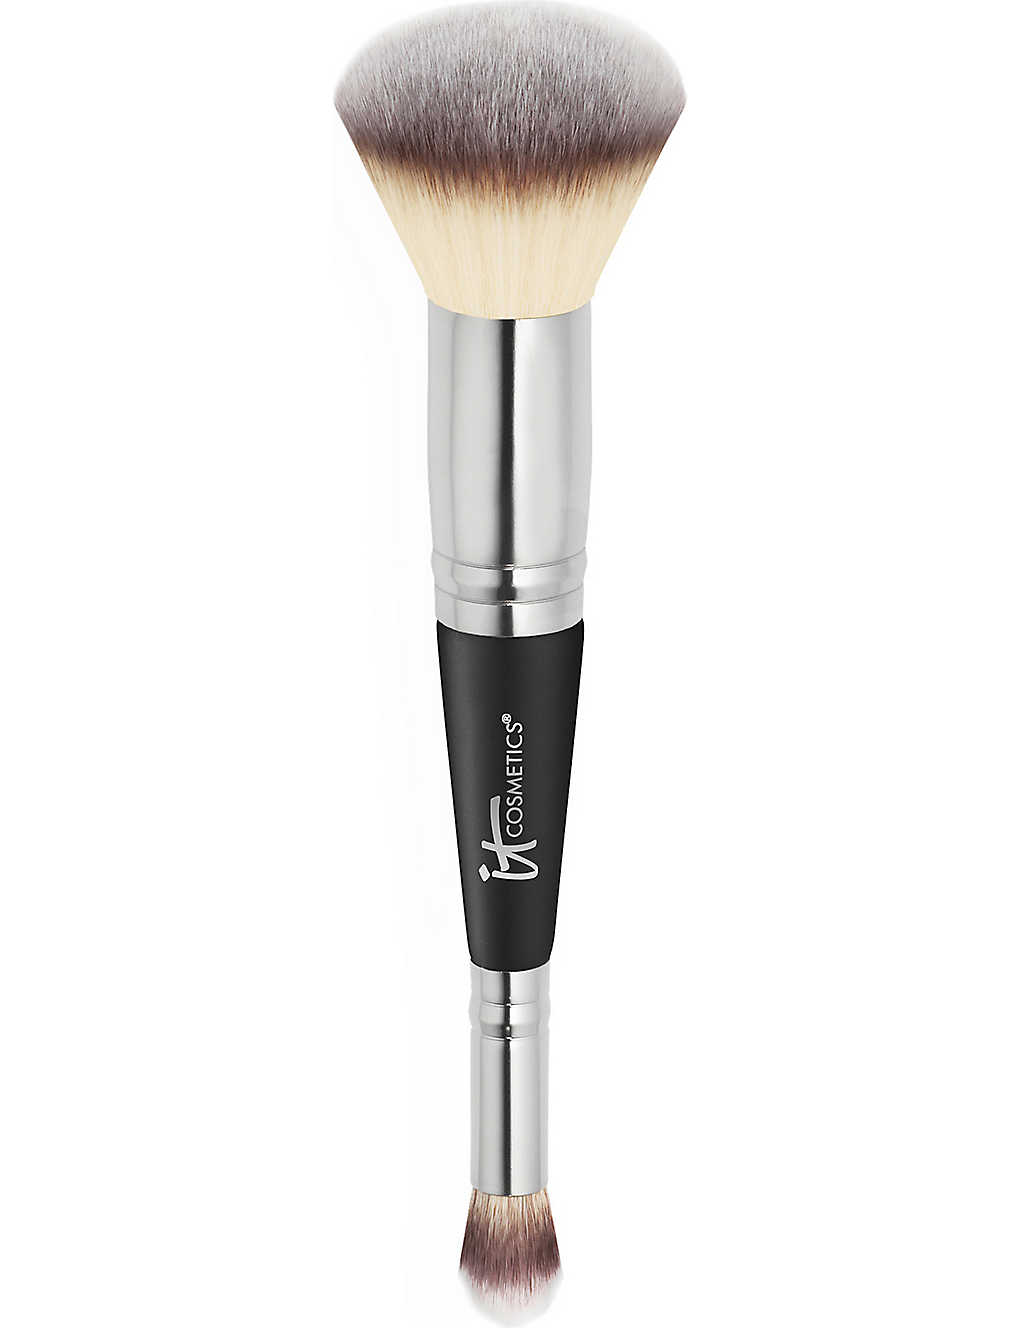 IT COSMETICS: Heavenly Luxe Complexion Perfection Brush